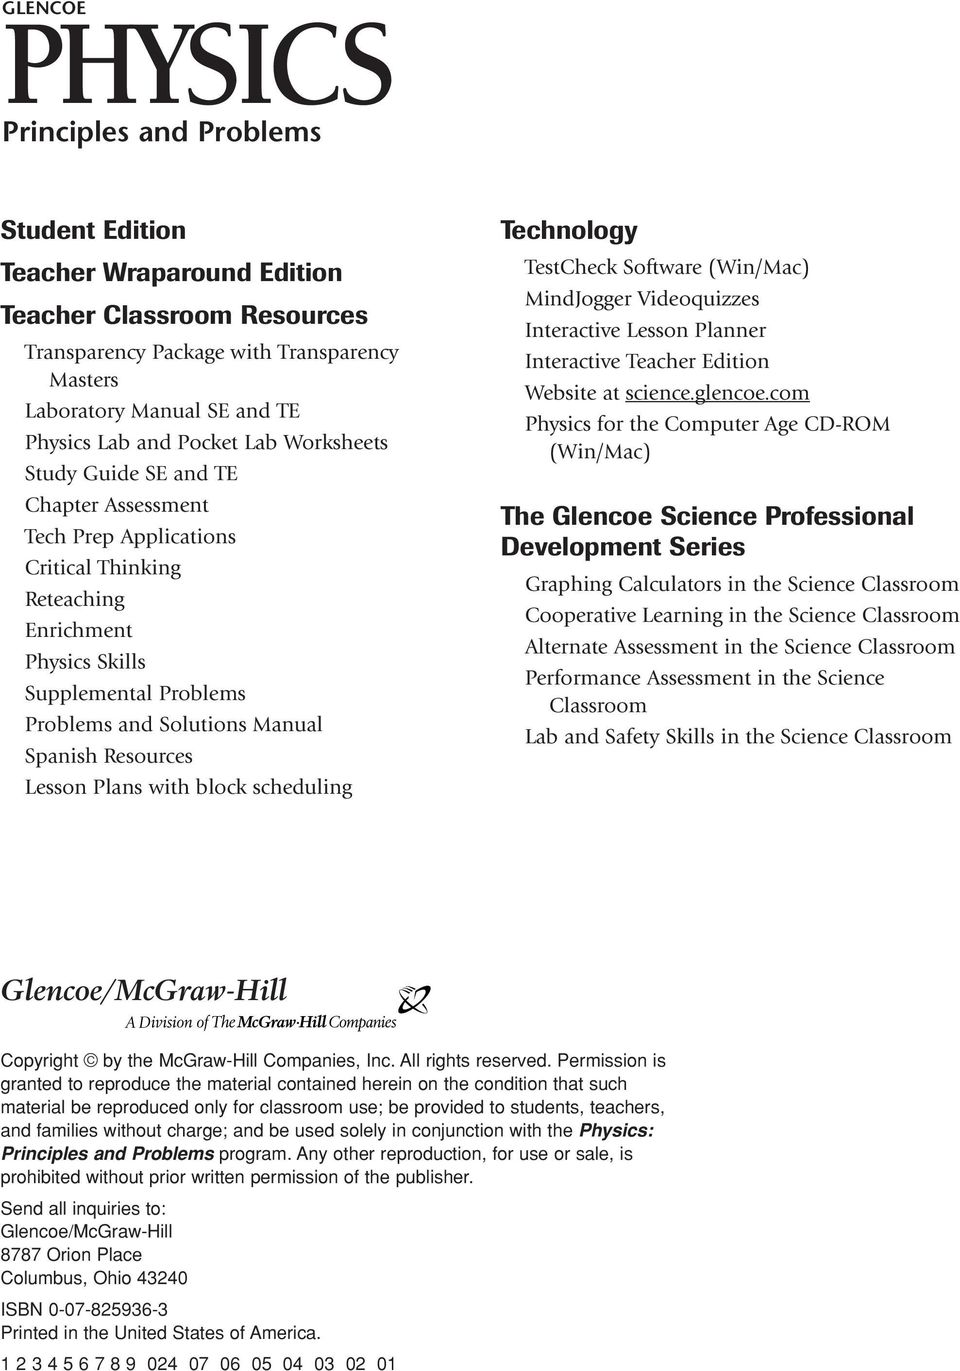 worksheet The Mcgraw Hill Companies Worksheet Answers glencoe physics principles and problems solutions spanish resources lesson plans with block scheduling technology testcheck software winmac mindjogger